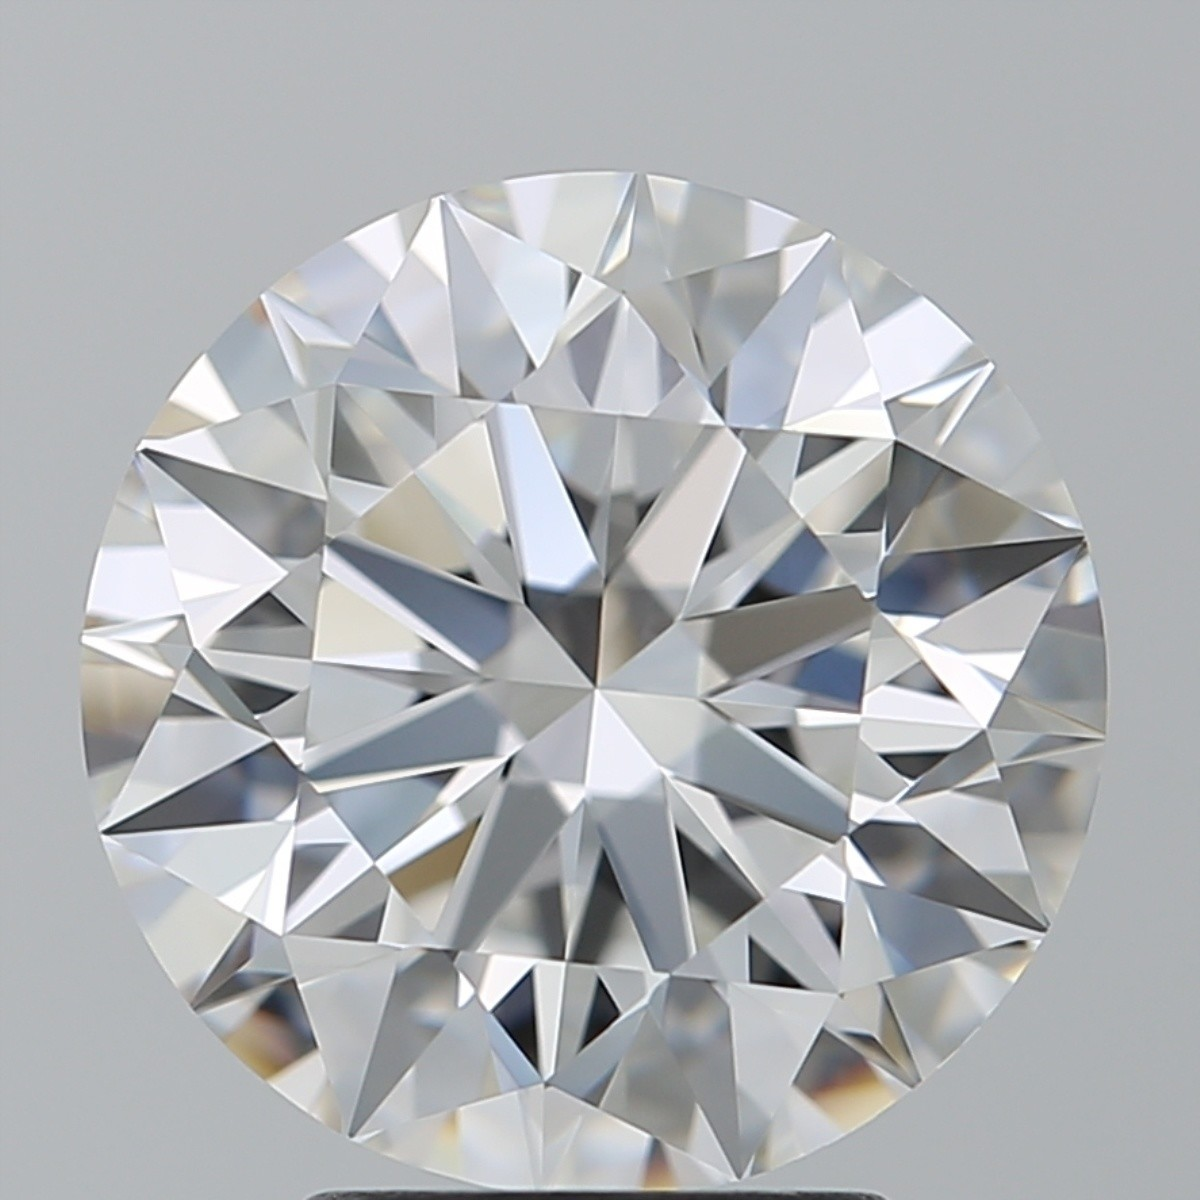 3.63 Carat Round Brilliant Diamond (E/IF)